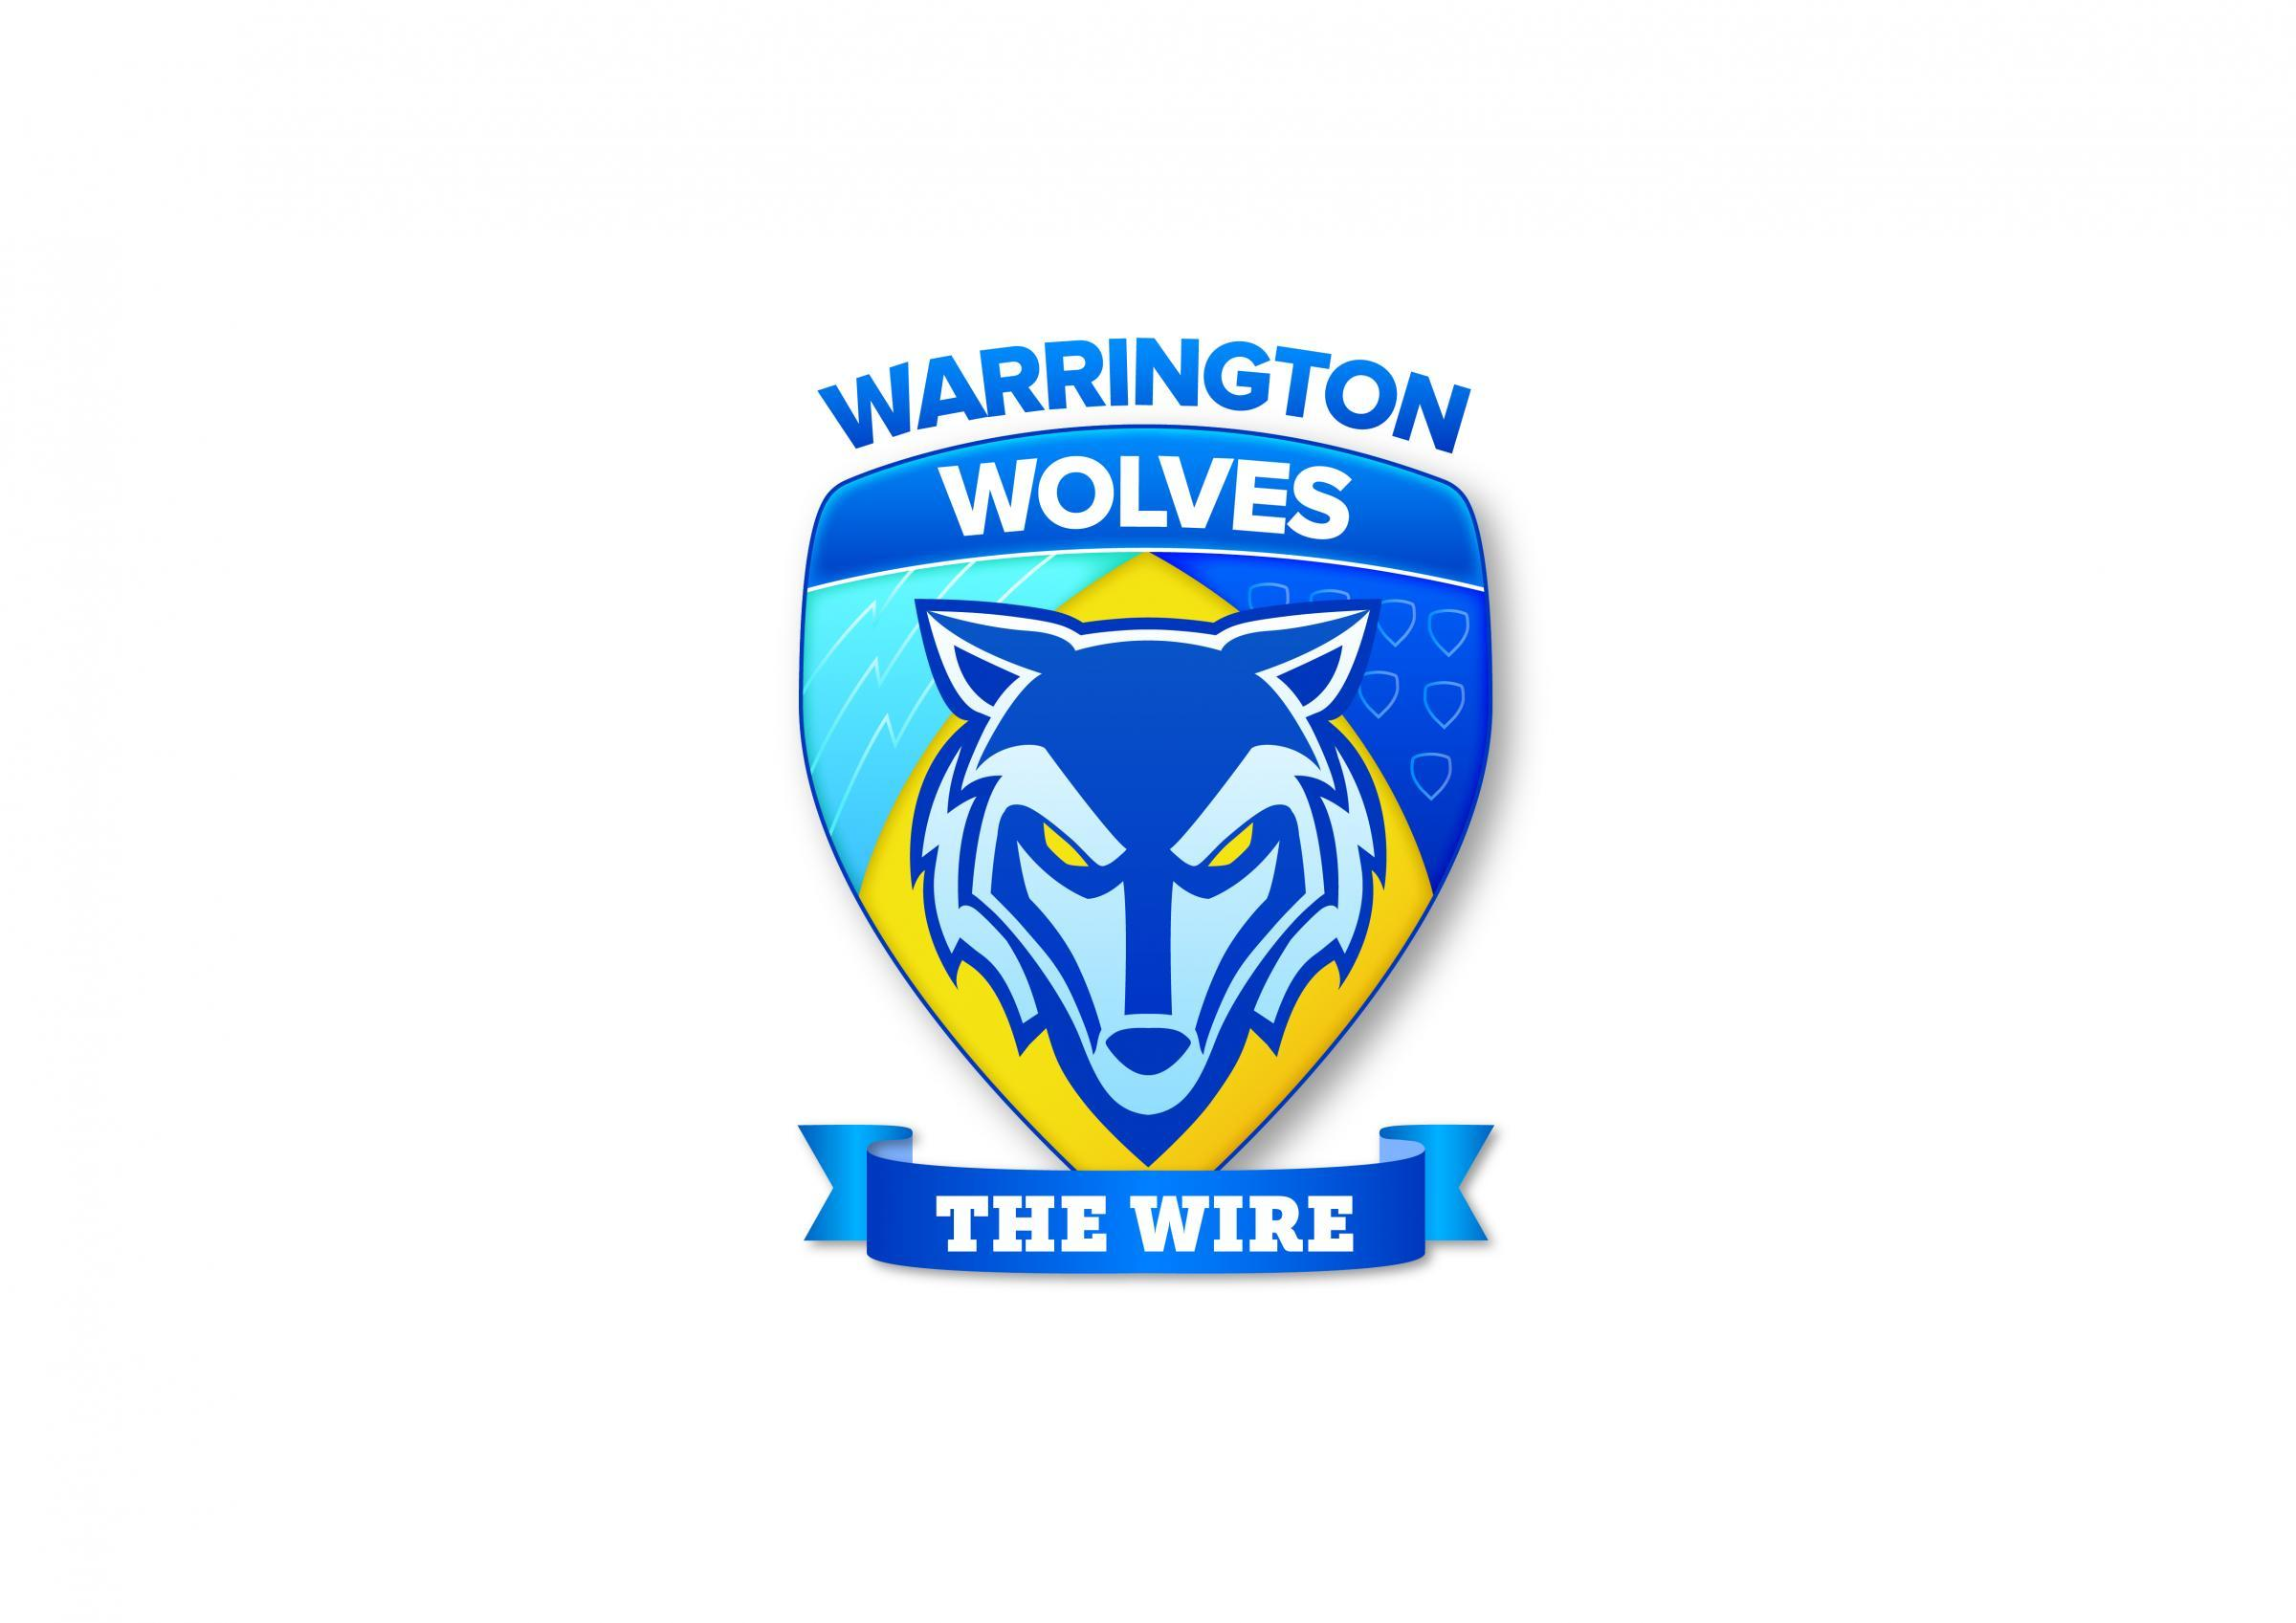 Warrington Wolves competition